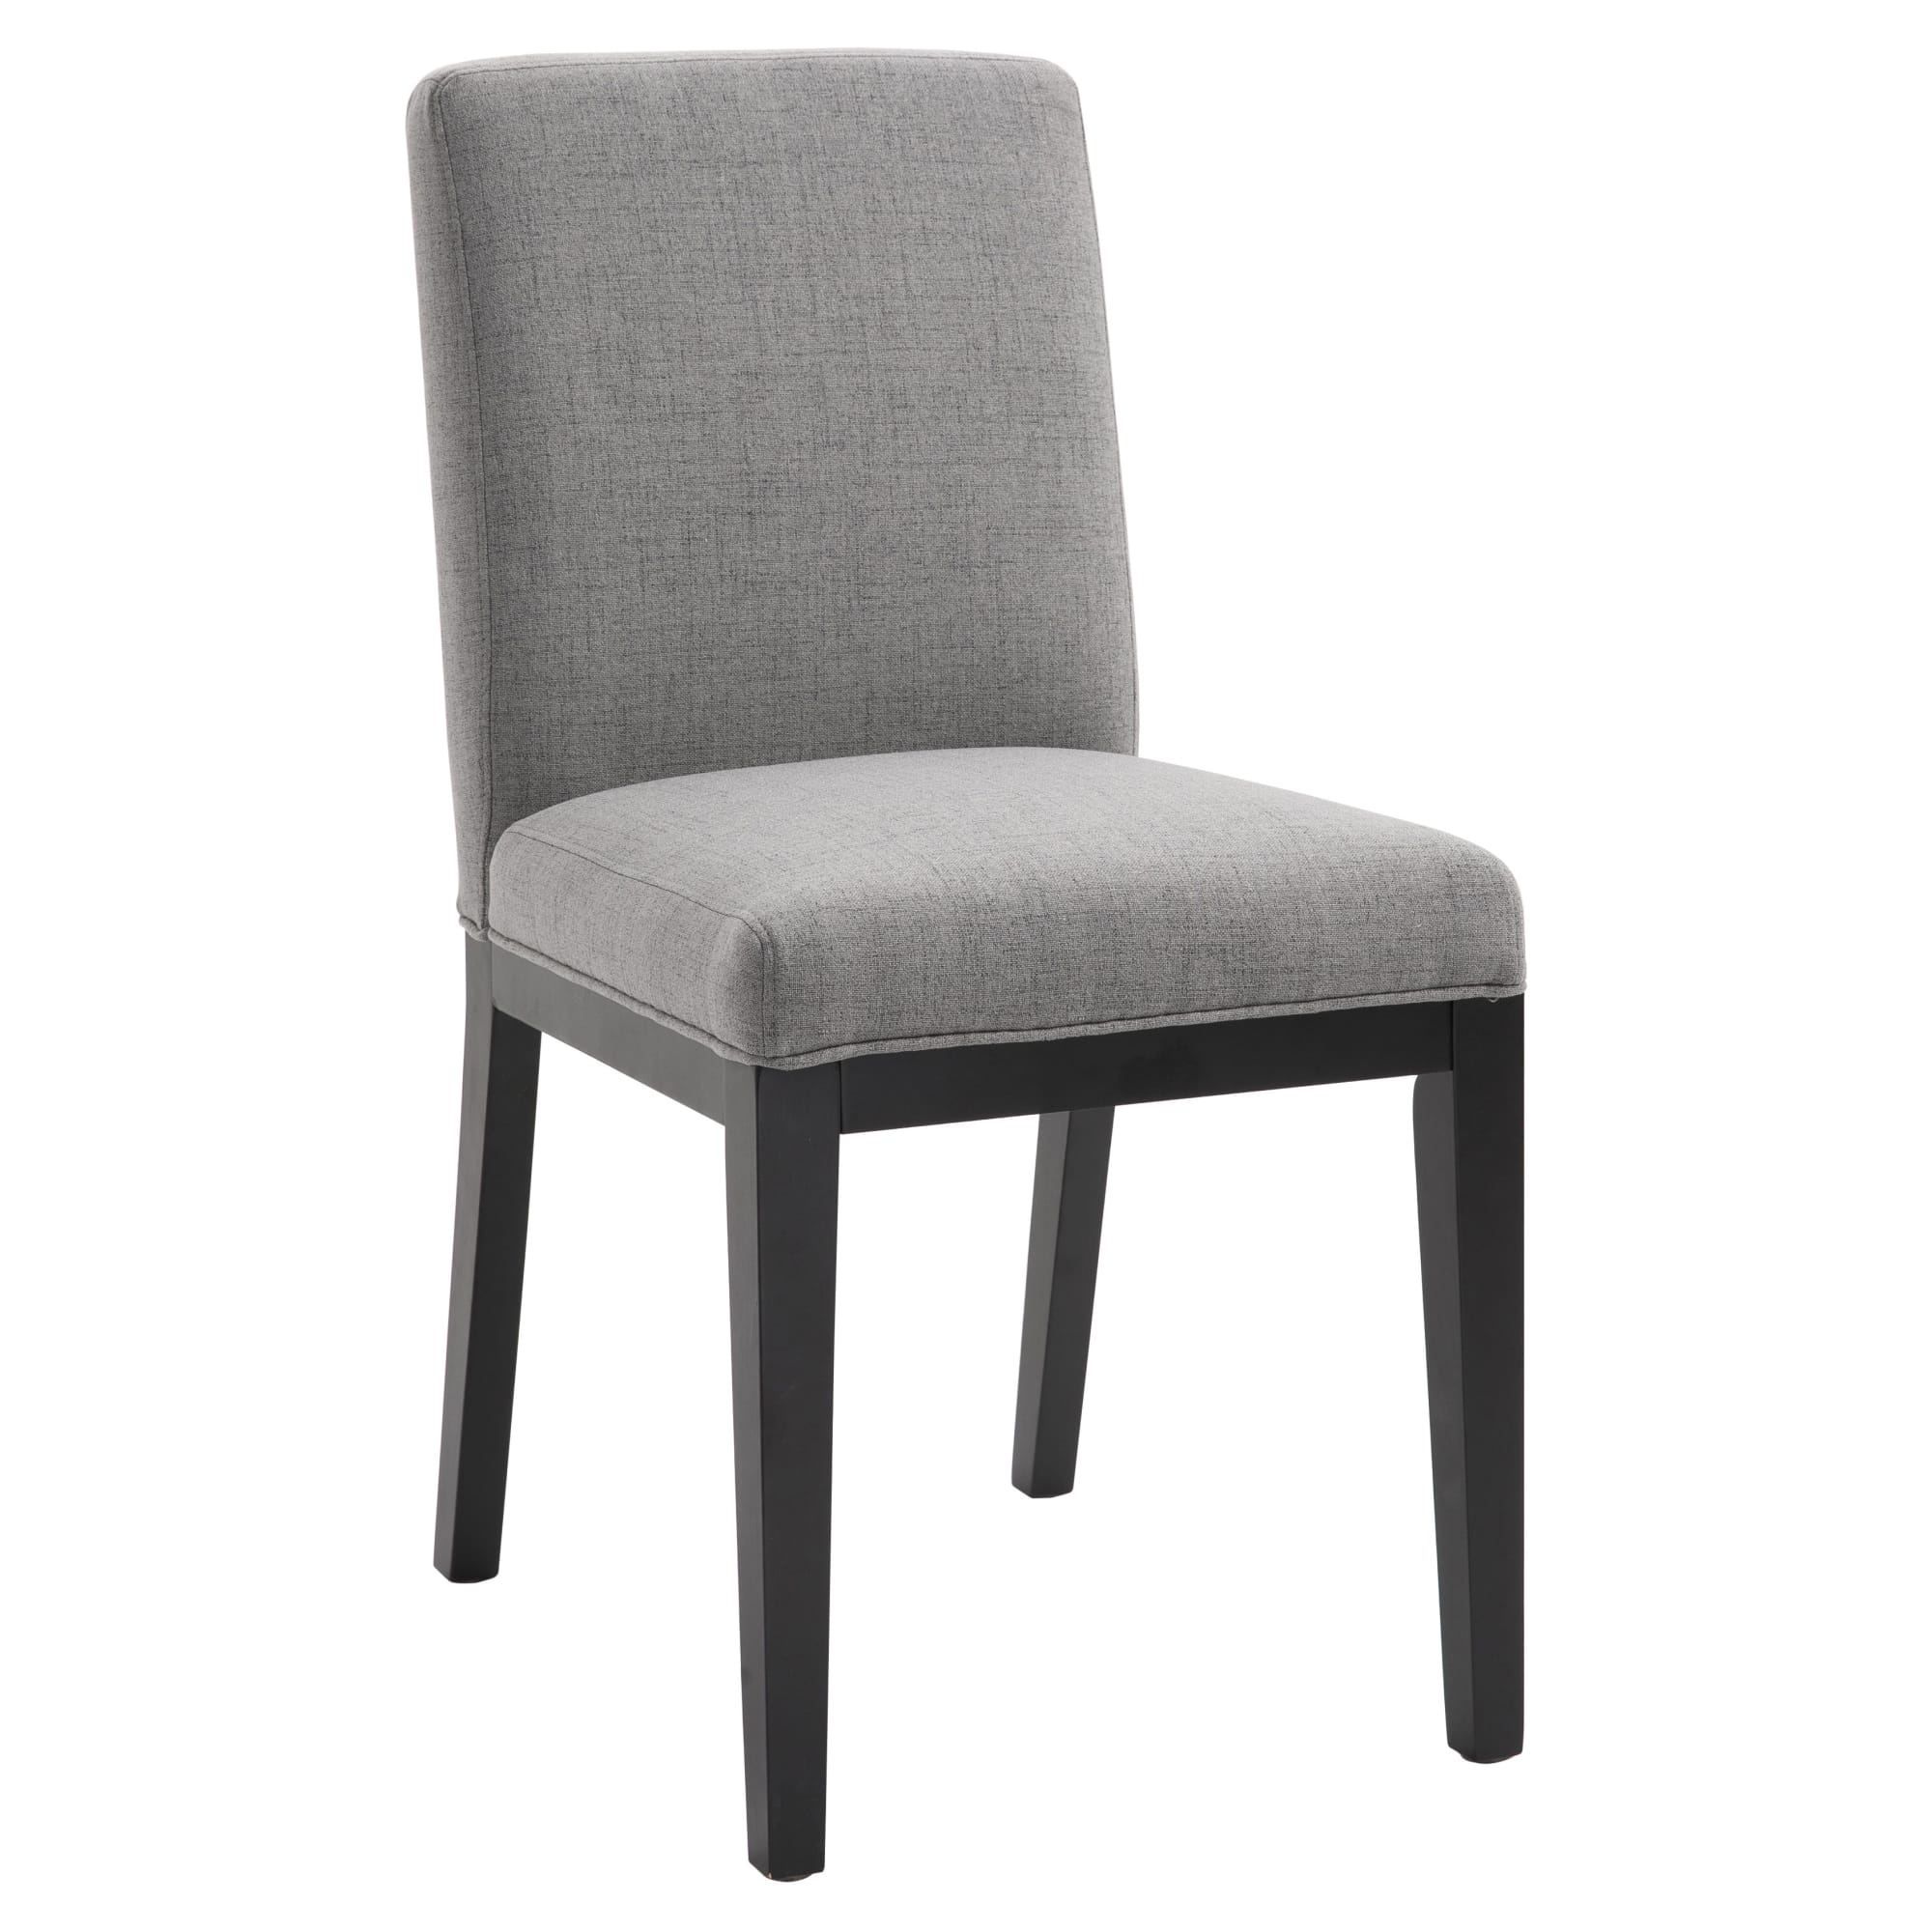 Adriano Upholstered Chair